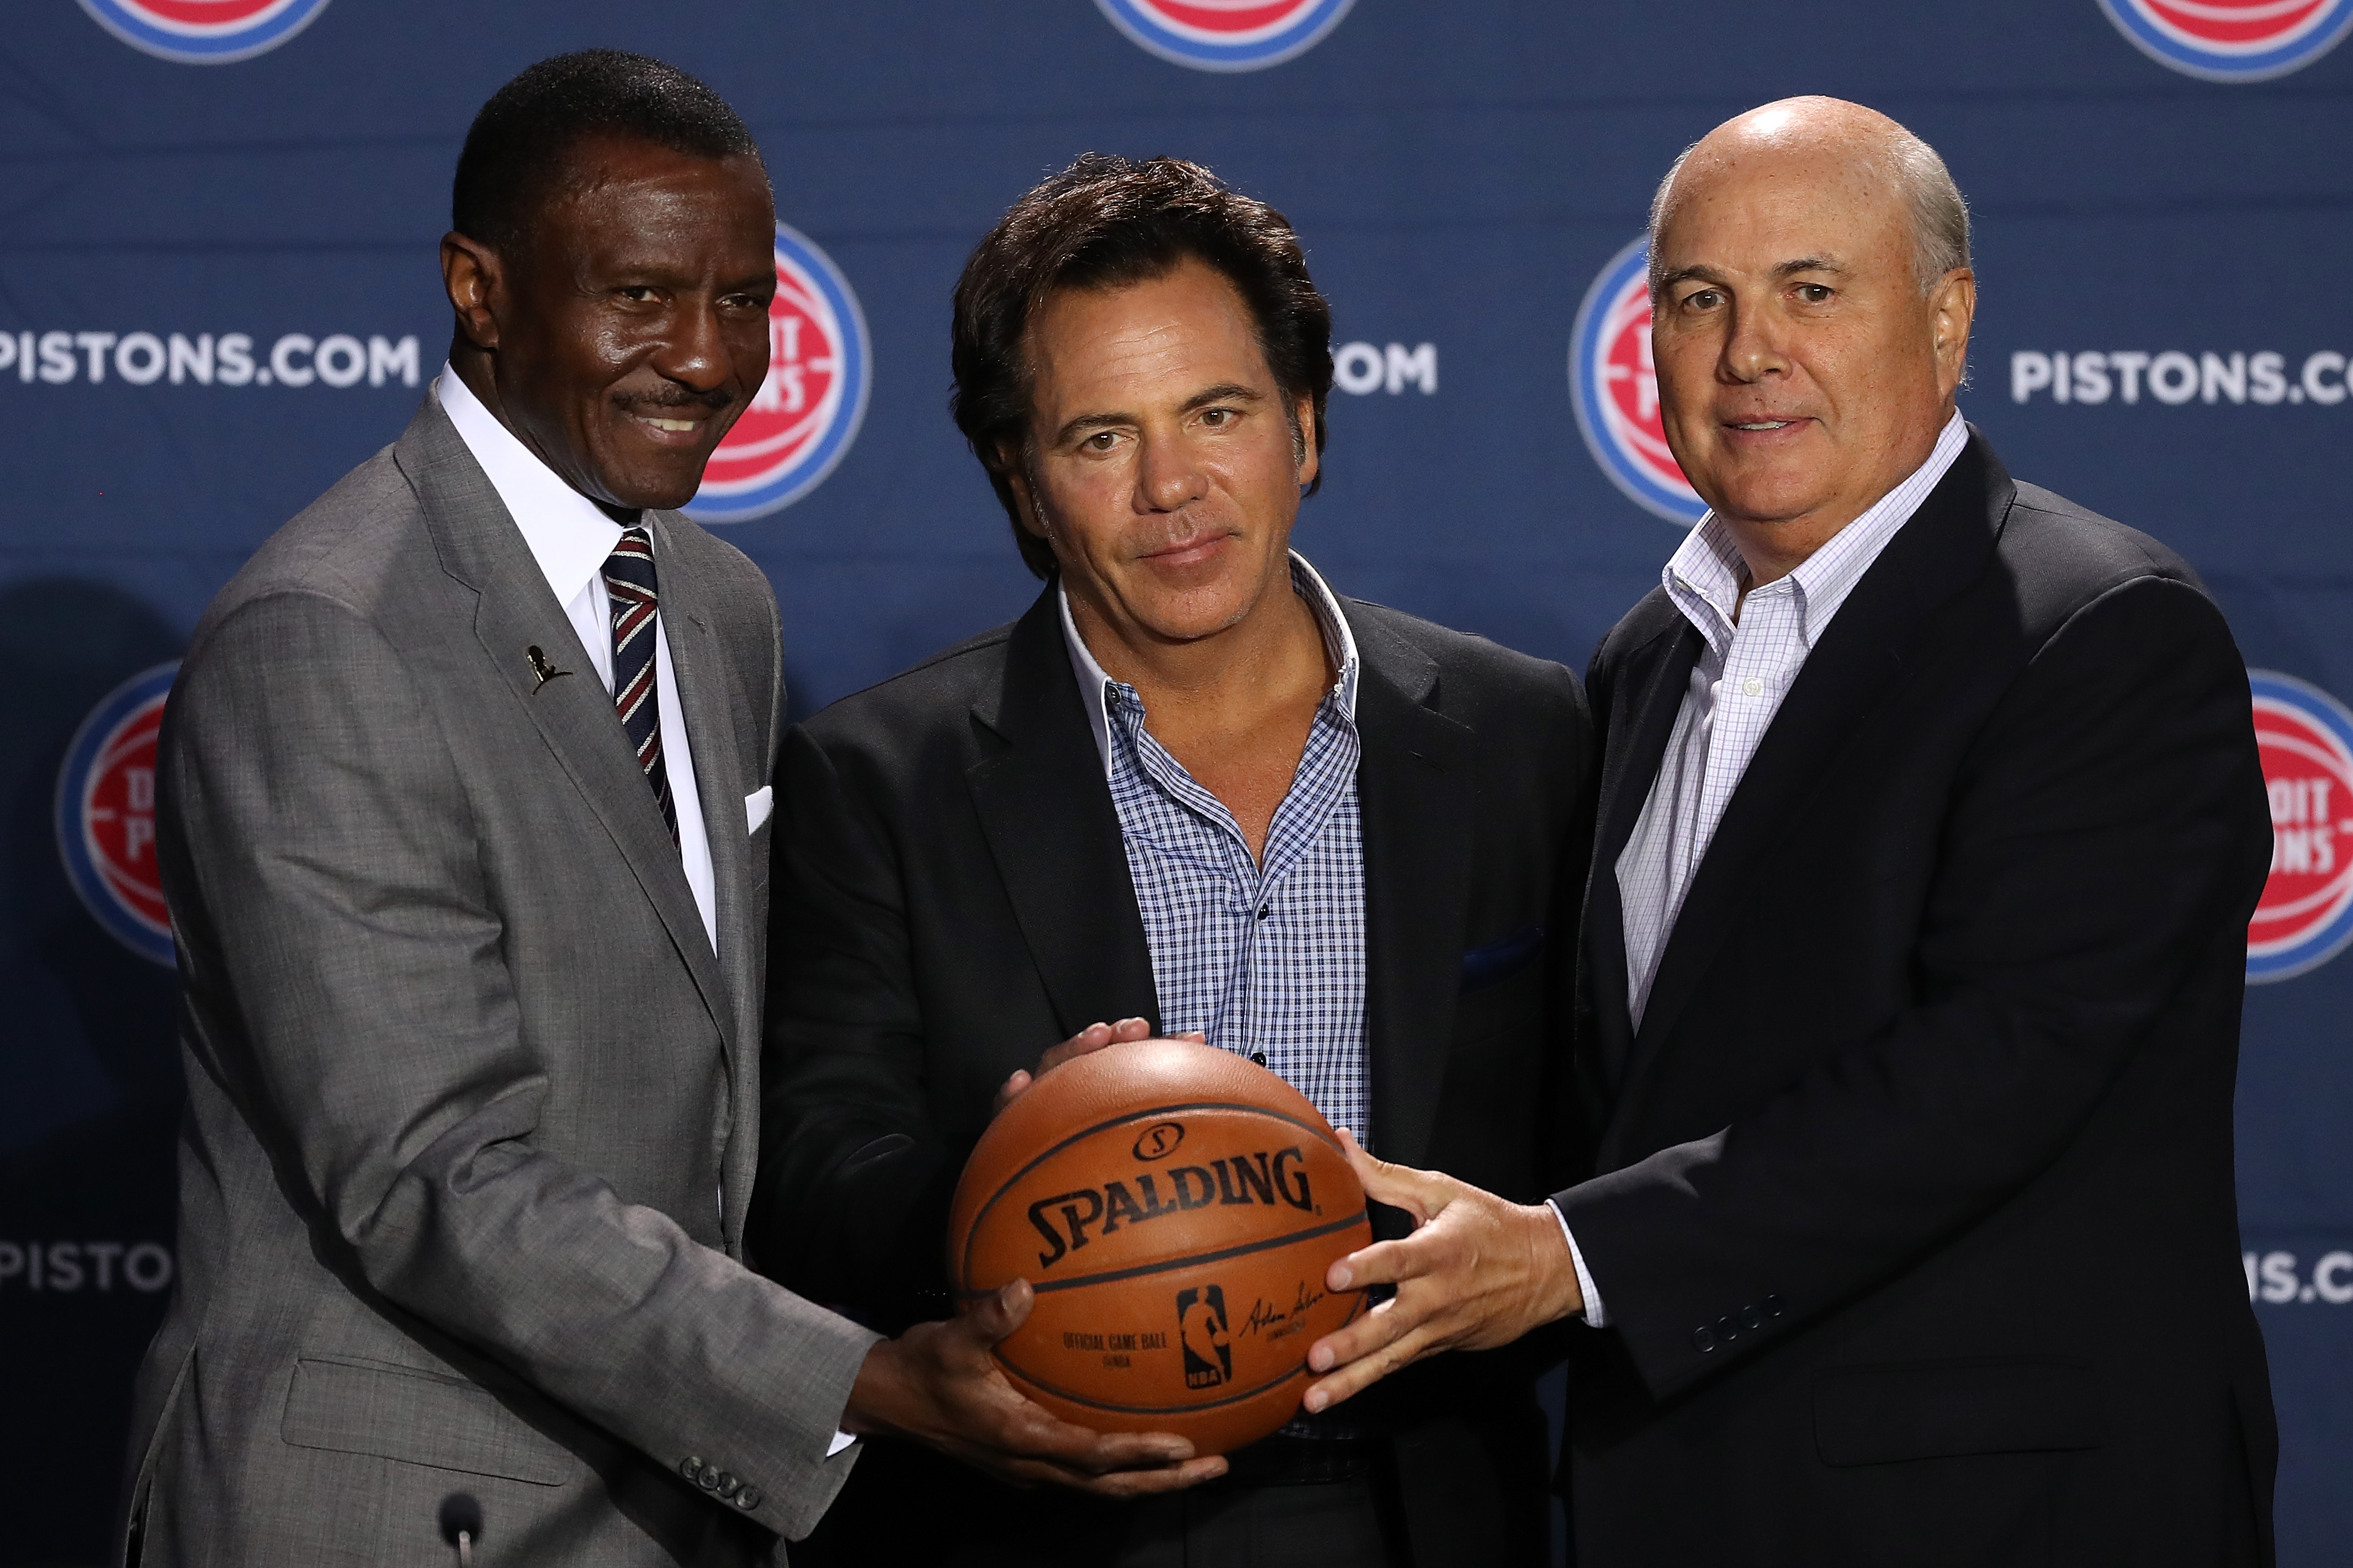 Pistons Know They Must Get It Right In Upcoming Draft: 'We Can't Strike Out'